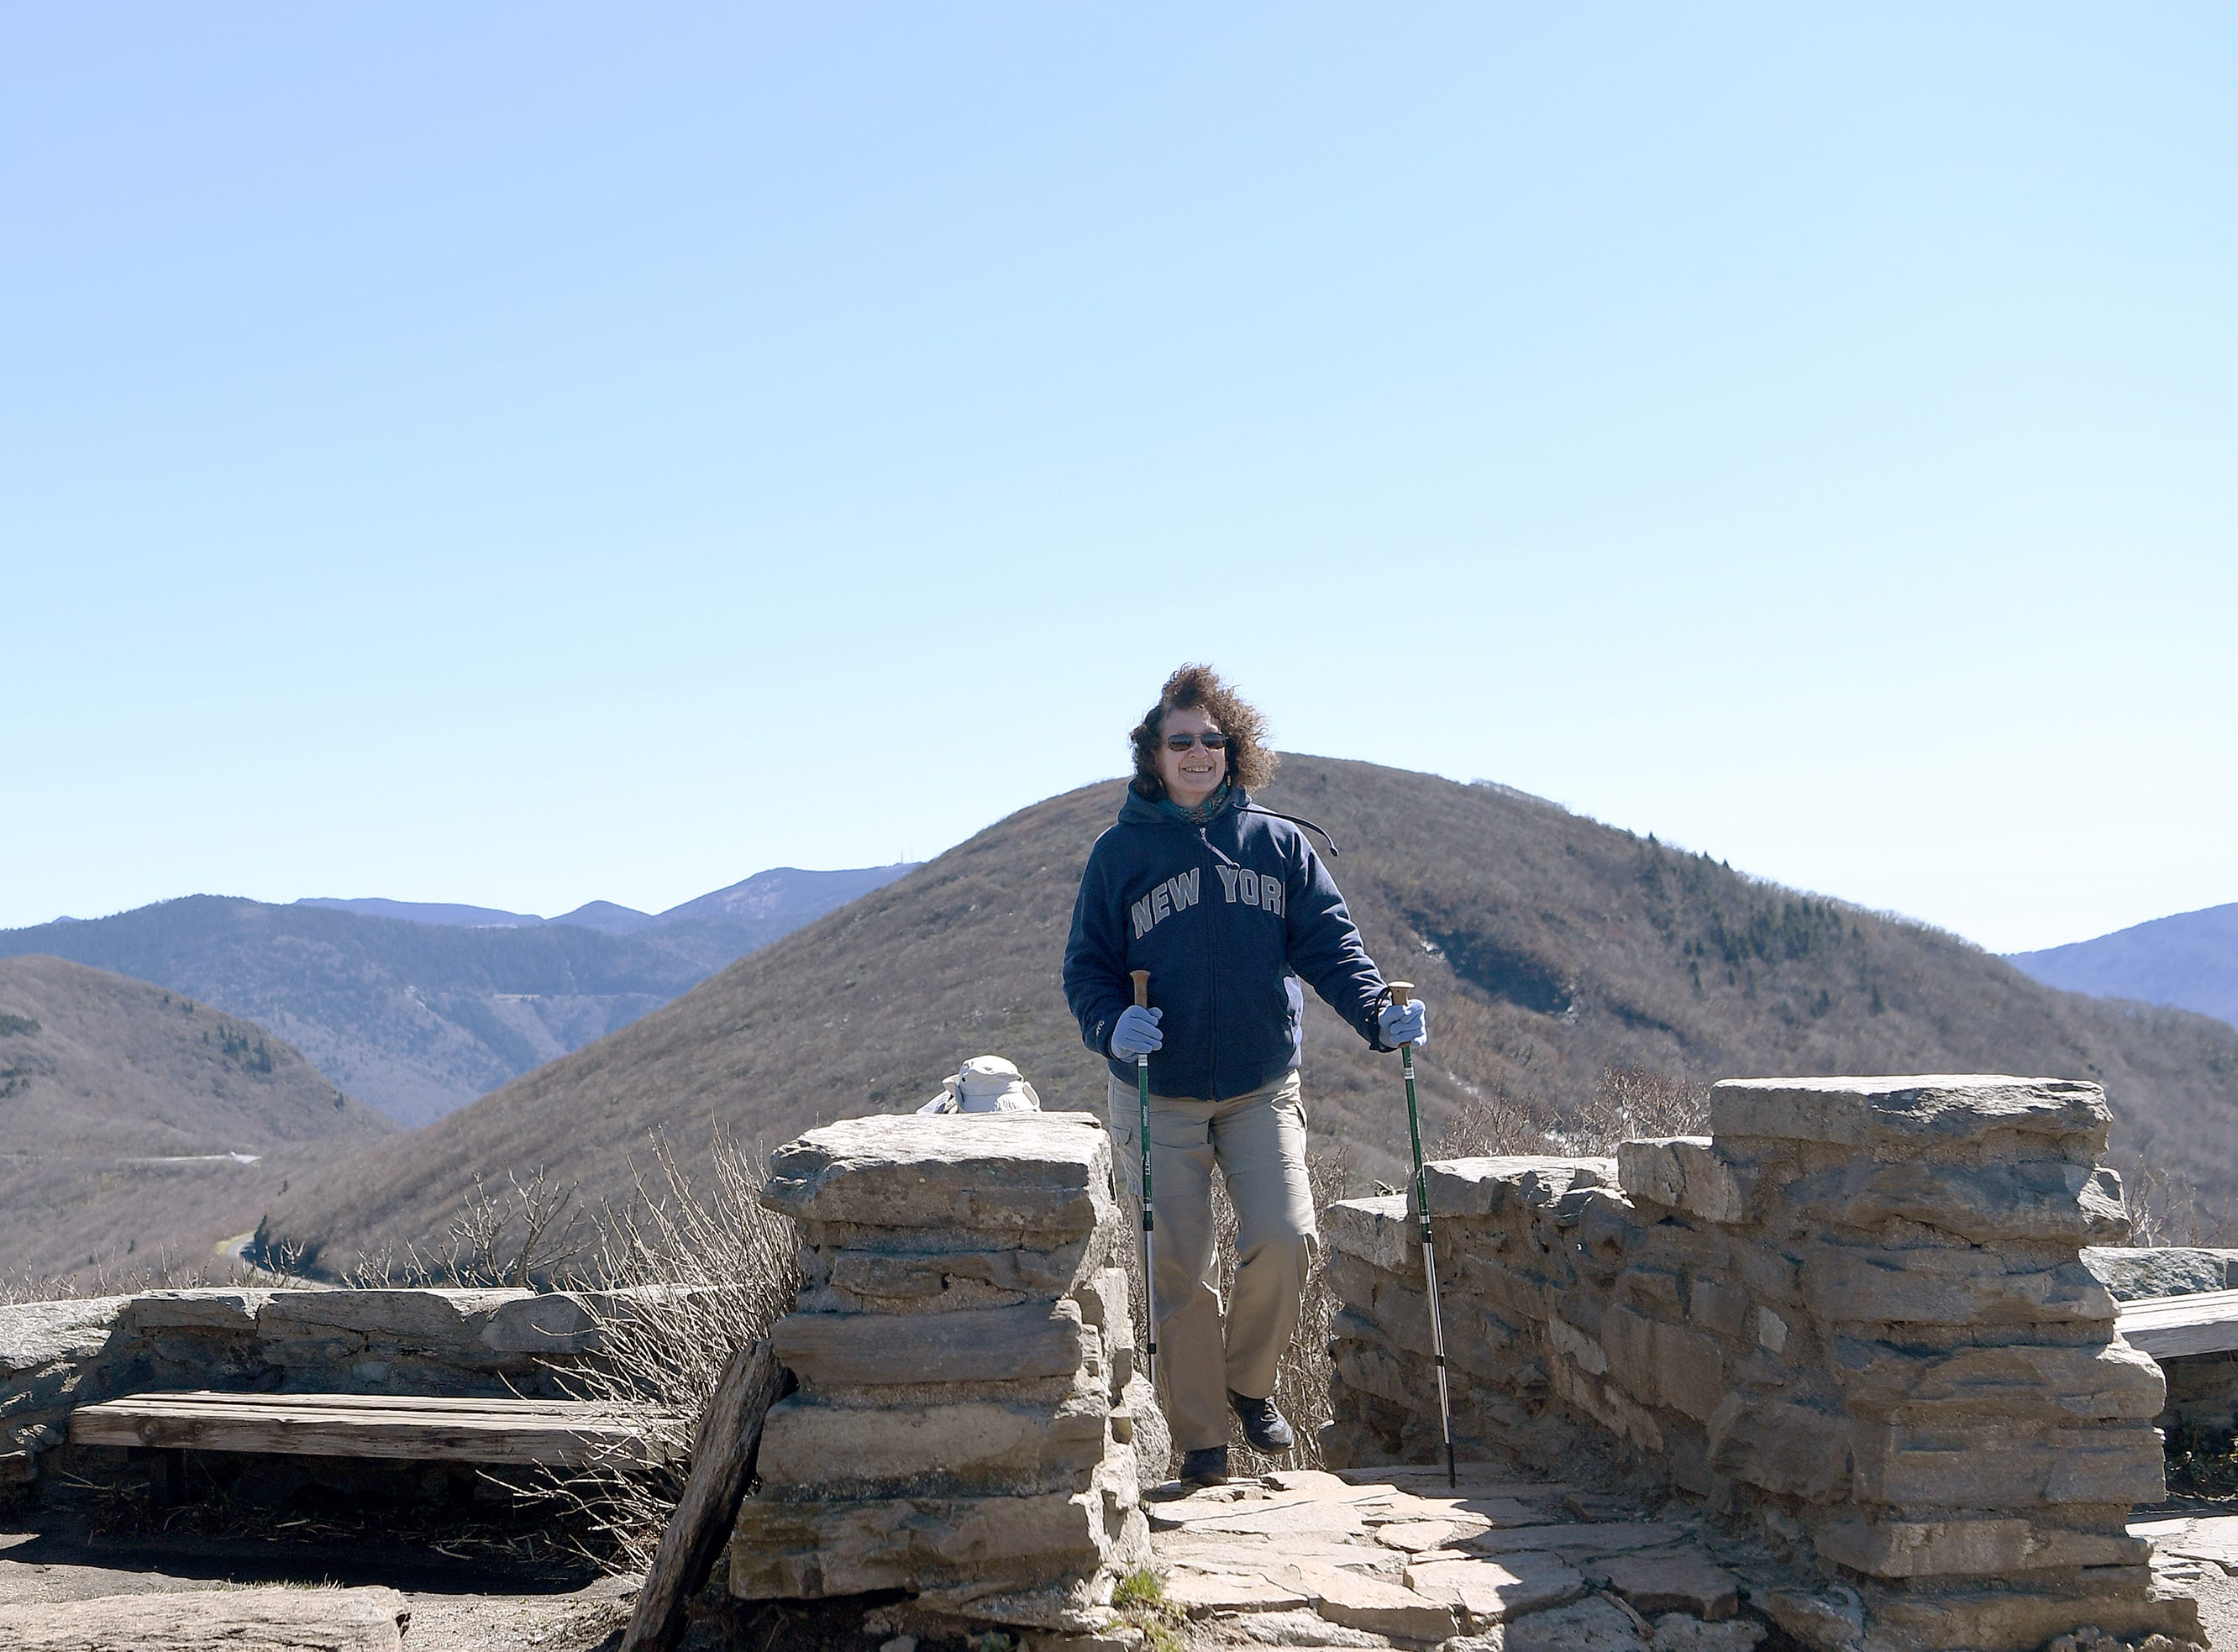 Claire Davis, of West Virginia, climbs the final stair to the top of the Craggy Pinnacle on the Blue Ridge Parkway on April 22, 2019.